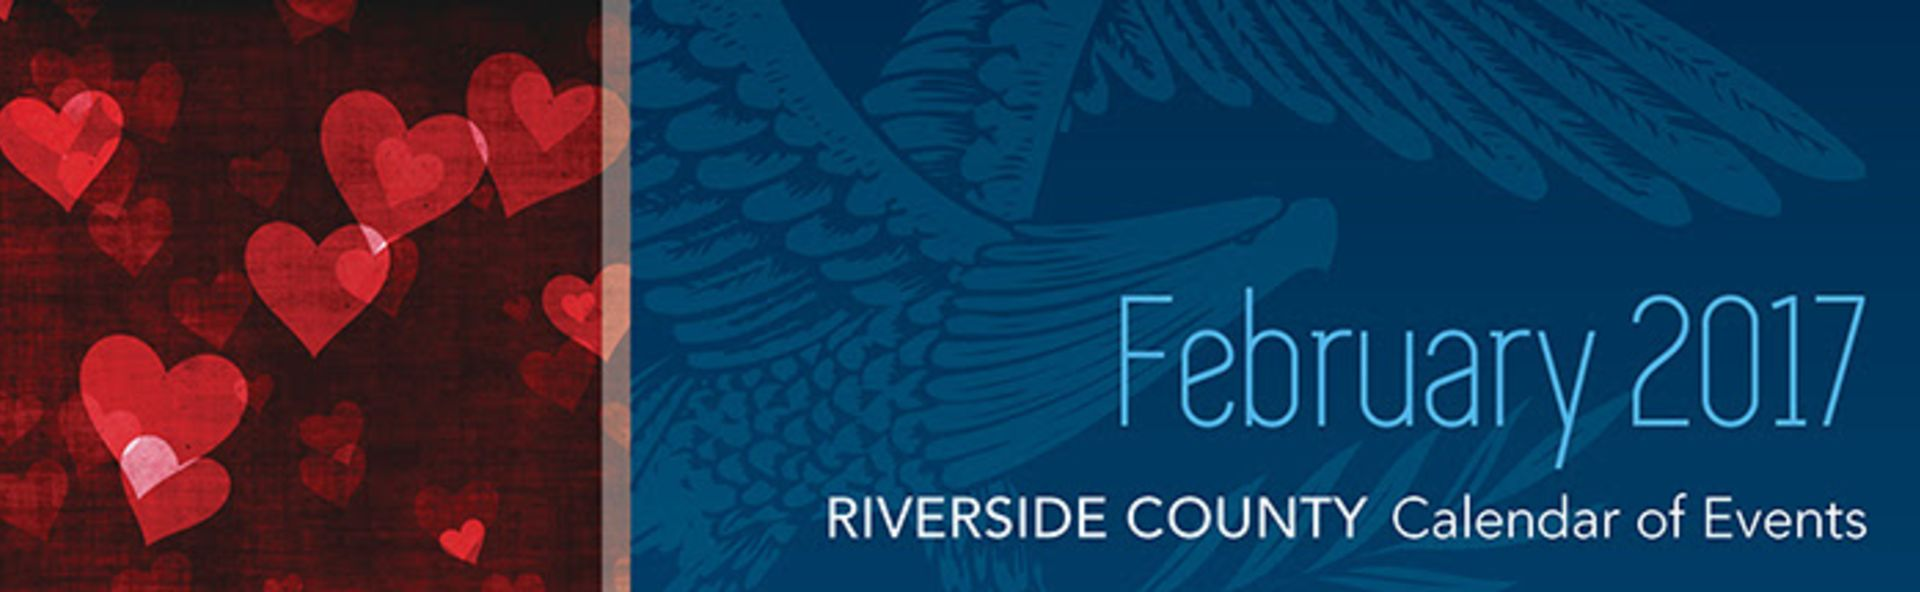 Riverside County Calendar of Events | February 2017